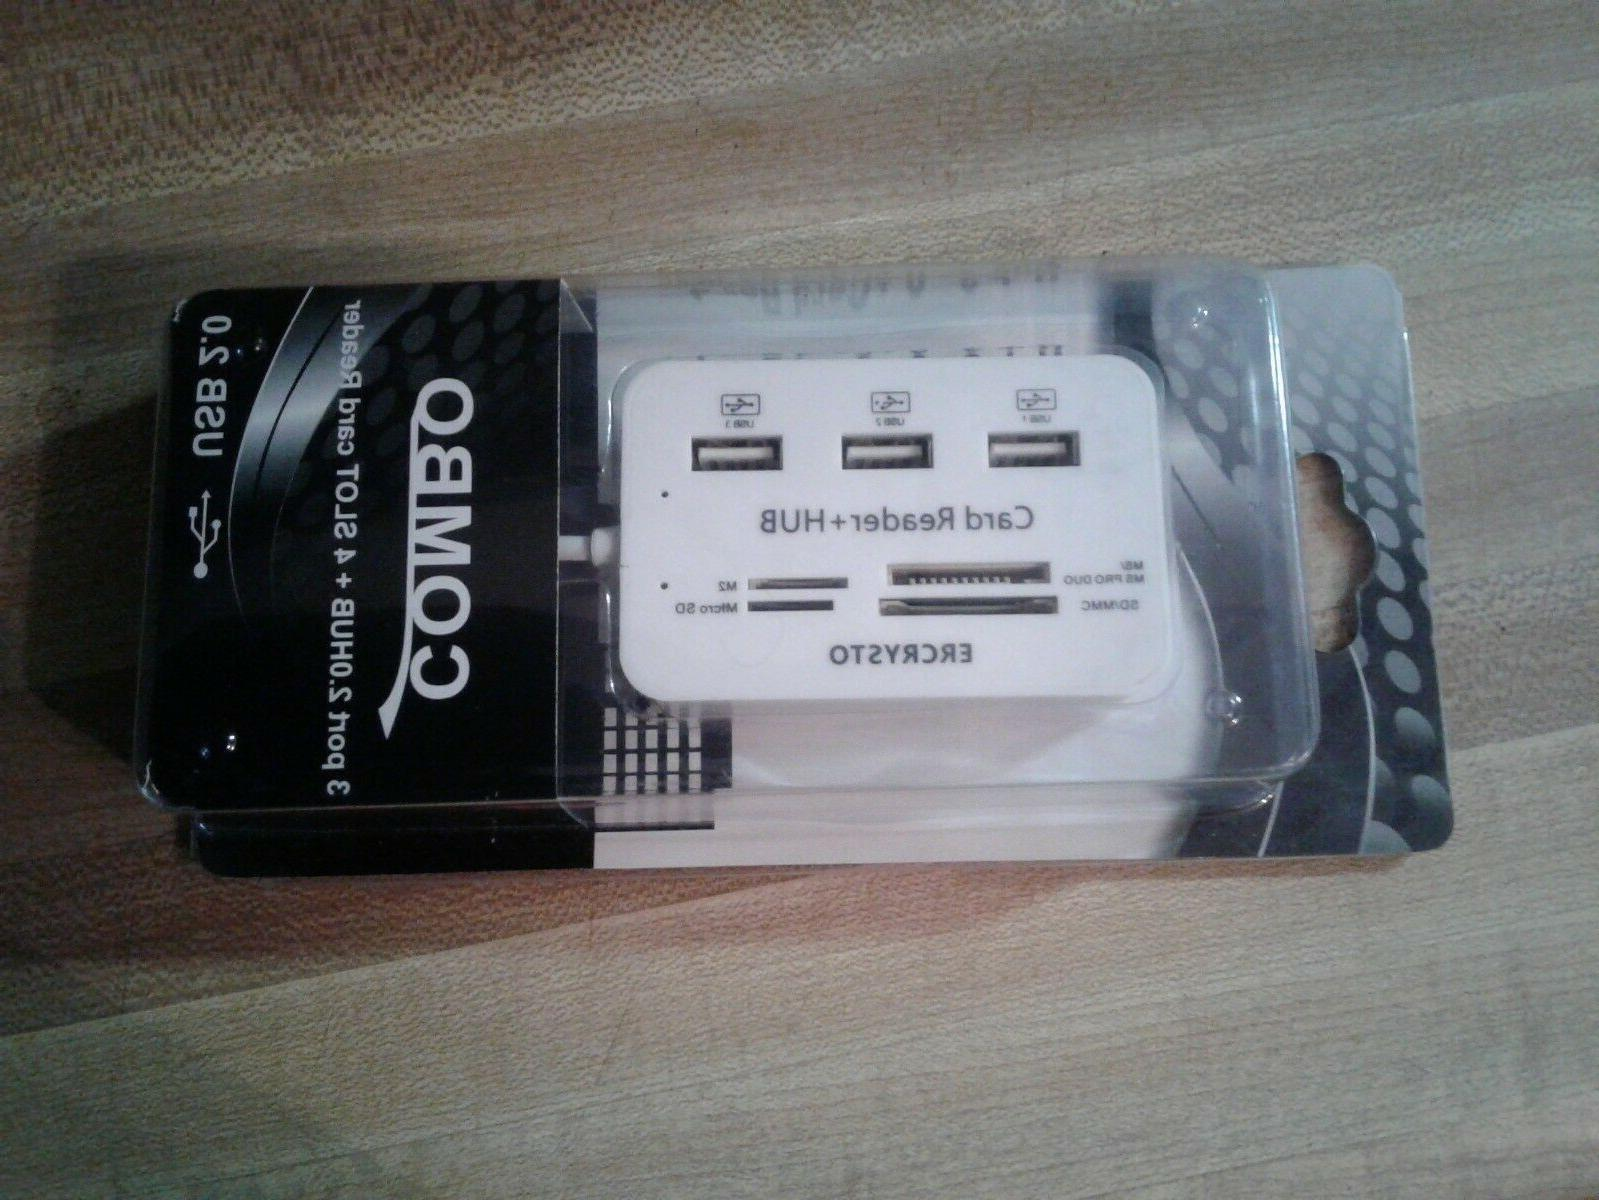 ERCRYSTO USB HUB CARD READER COMBO USB EXTERNAL - NEW